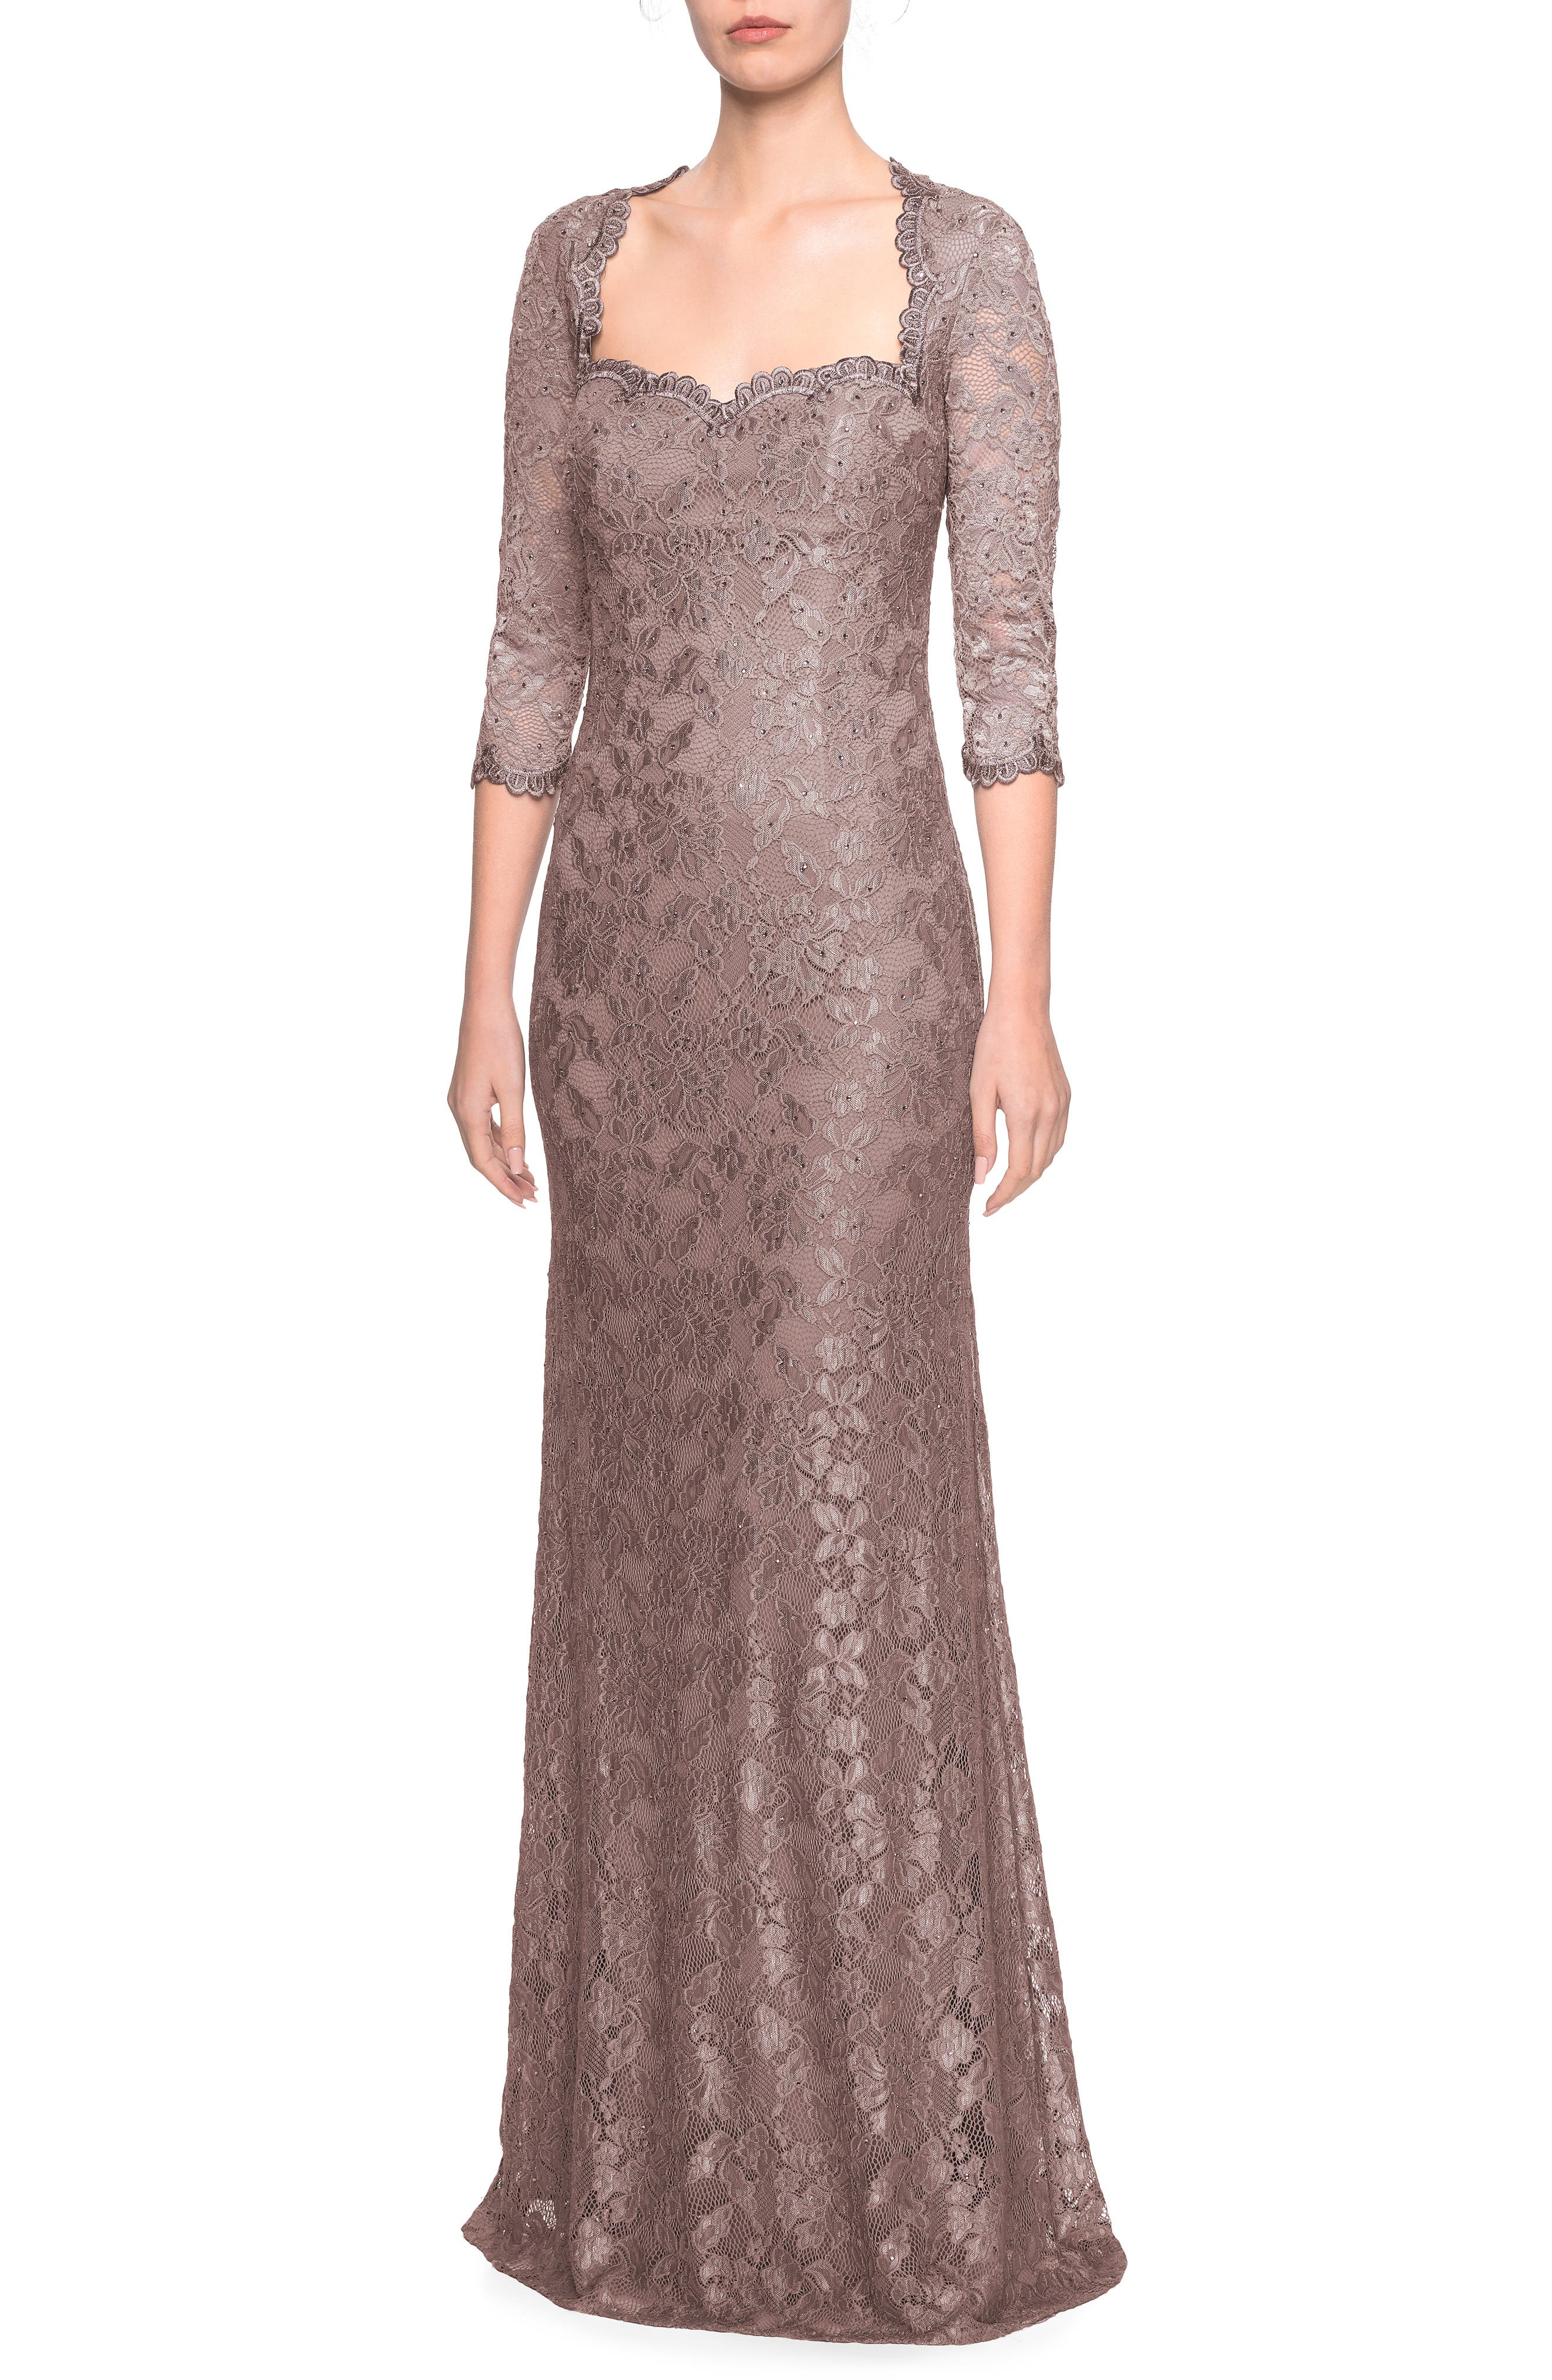 1940s Bridesmaid Dresses, Mother of the Bride Womens La Femme Lace Column Gown Size 18 similar to 16W-18W - Brown $398.00 AT vintagedancer.com